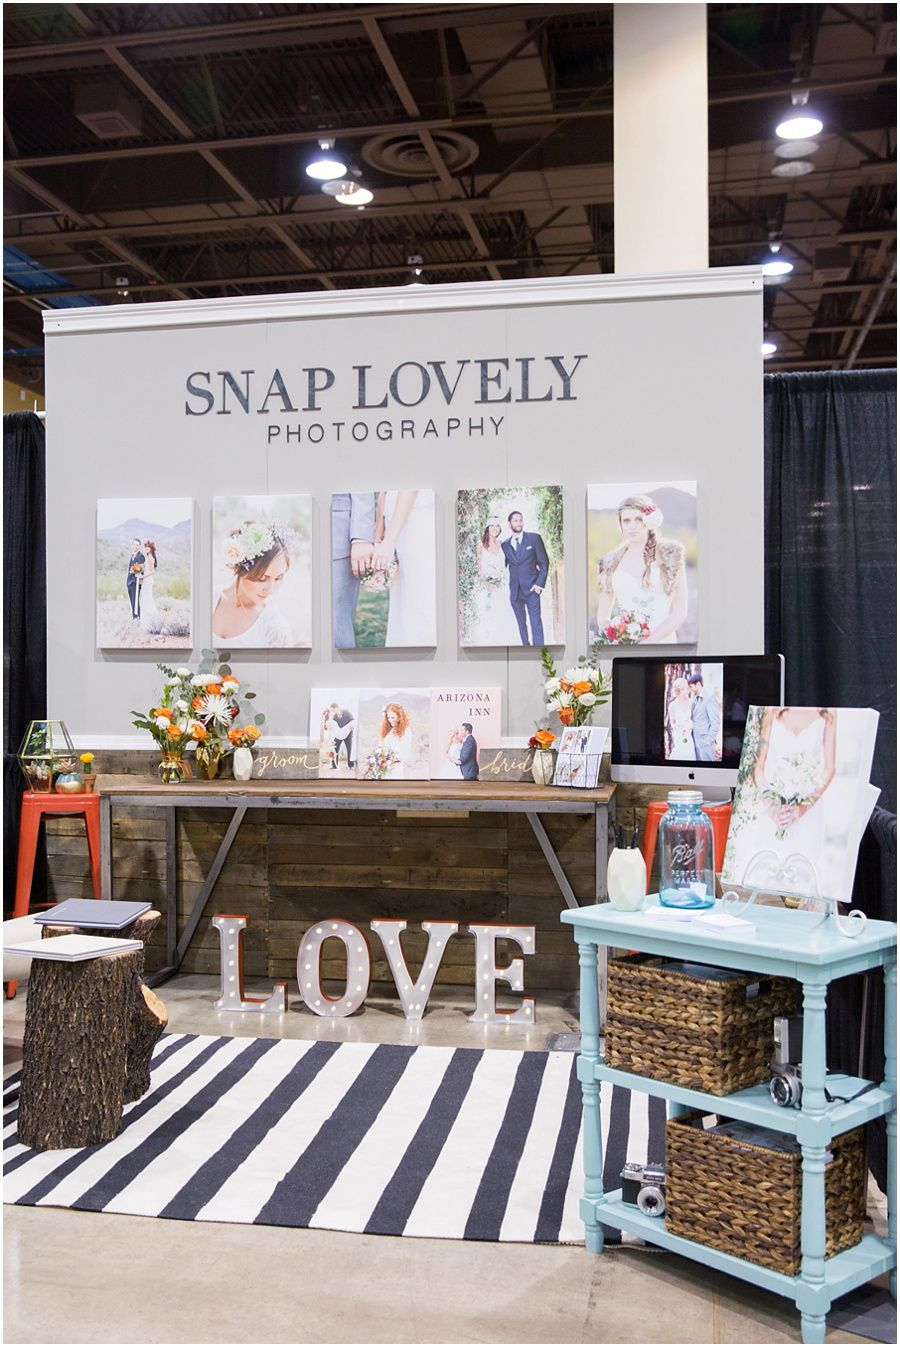 Beautiful Bridal Show Booth By Snap Lovely Photography